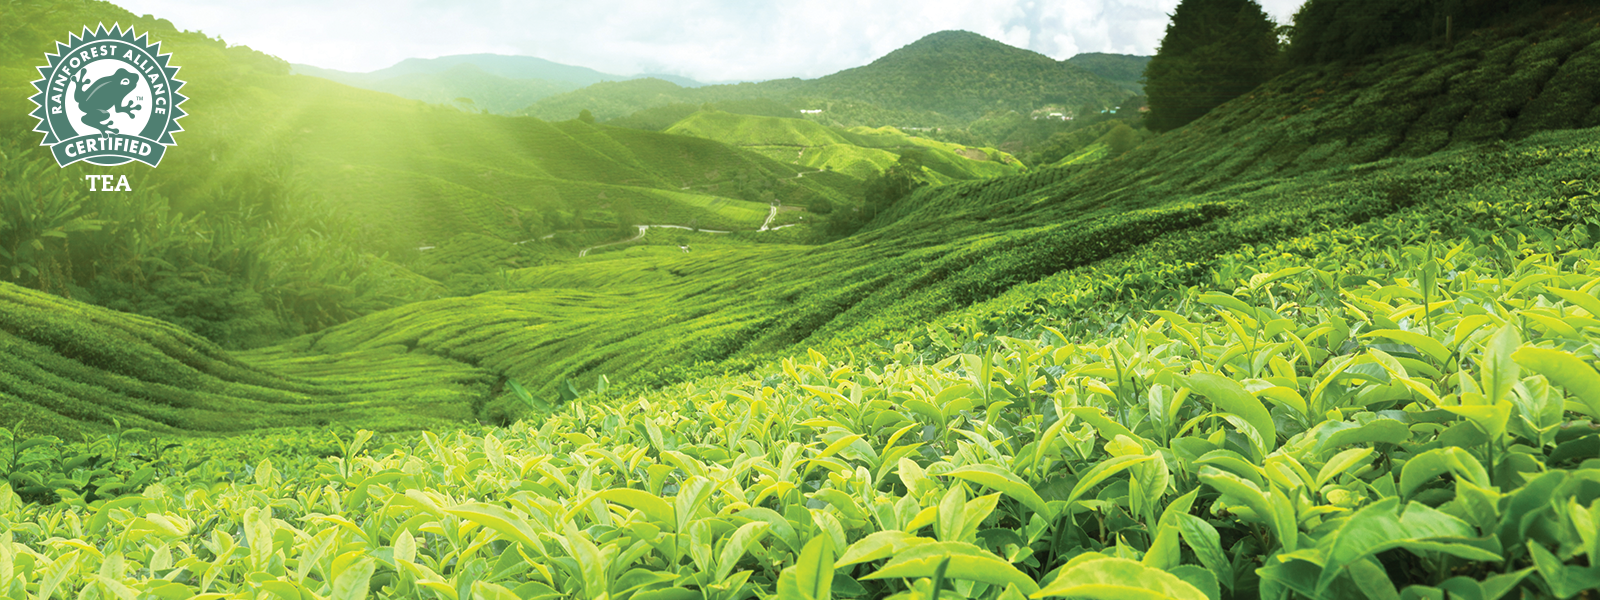 The Tea Company Sustainability